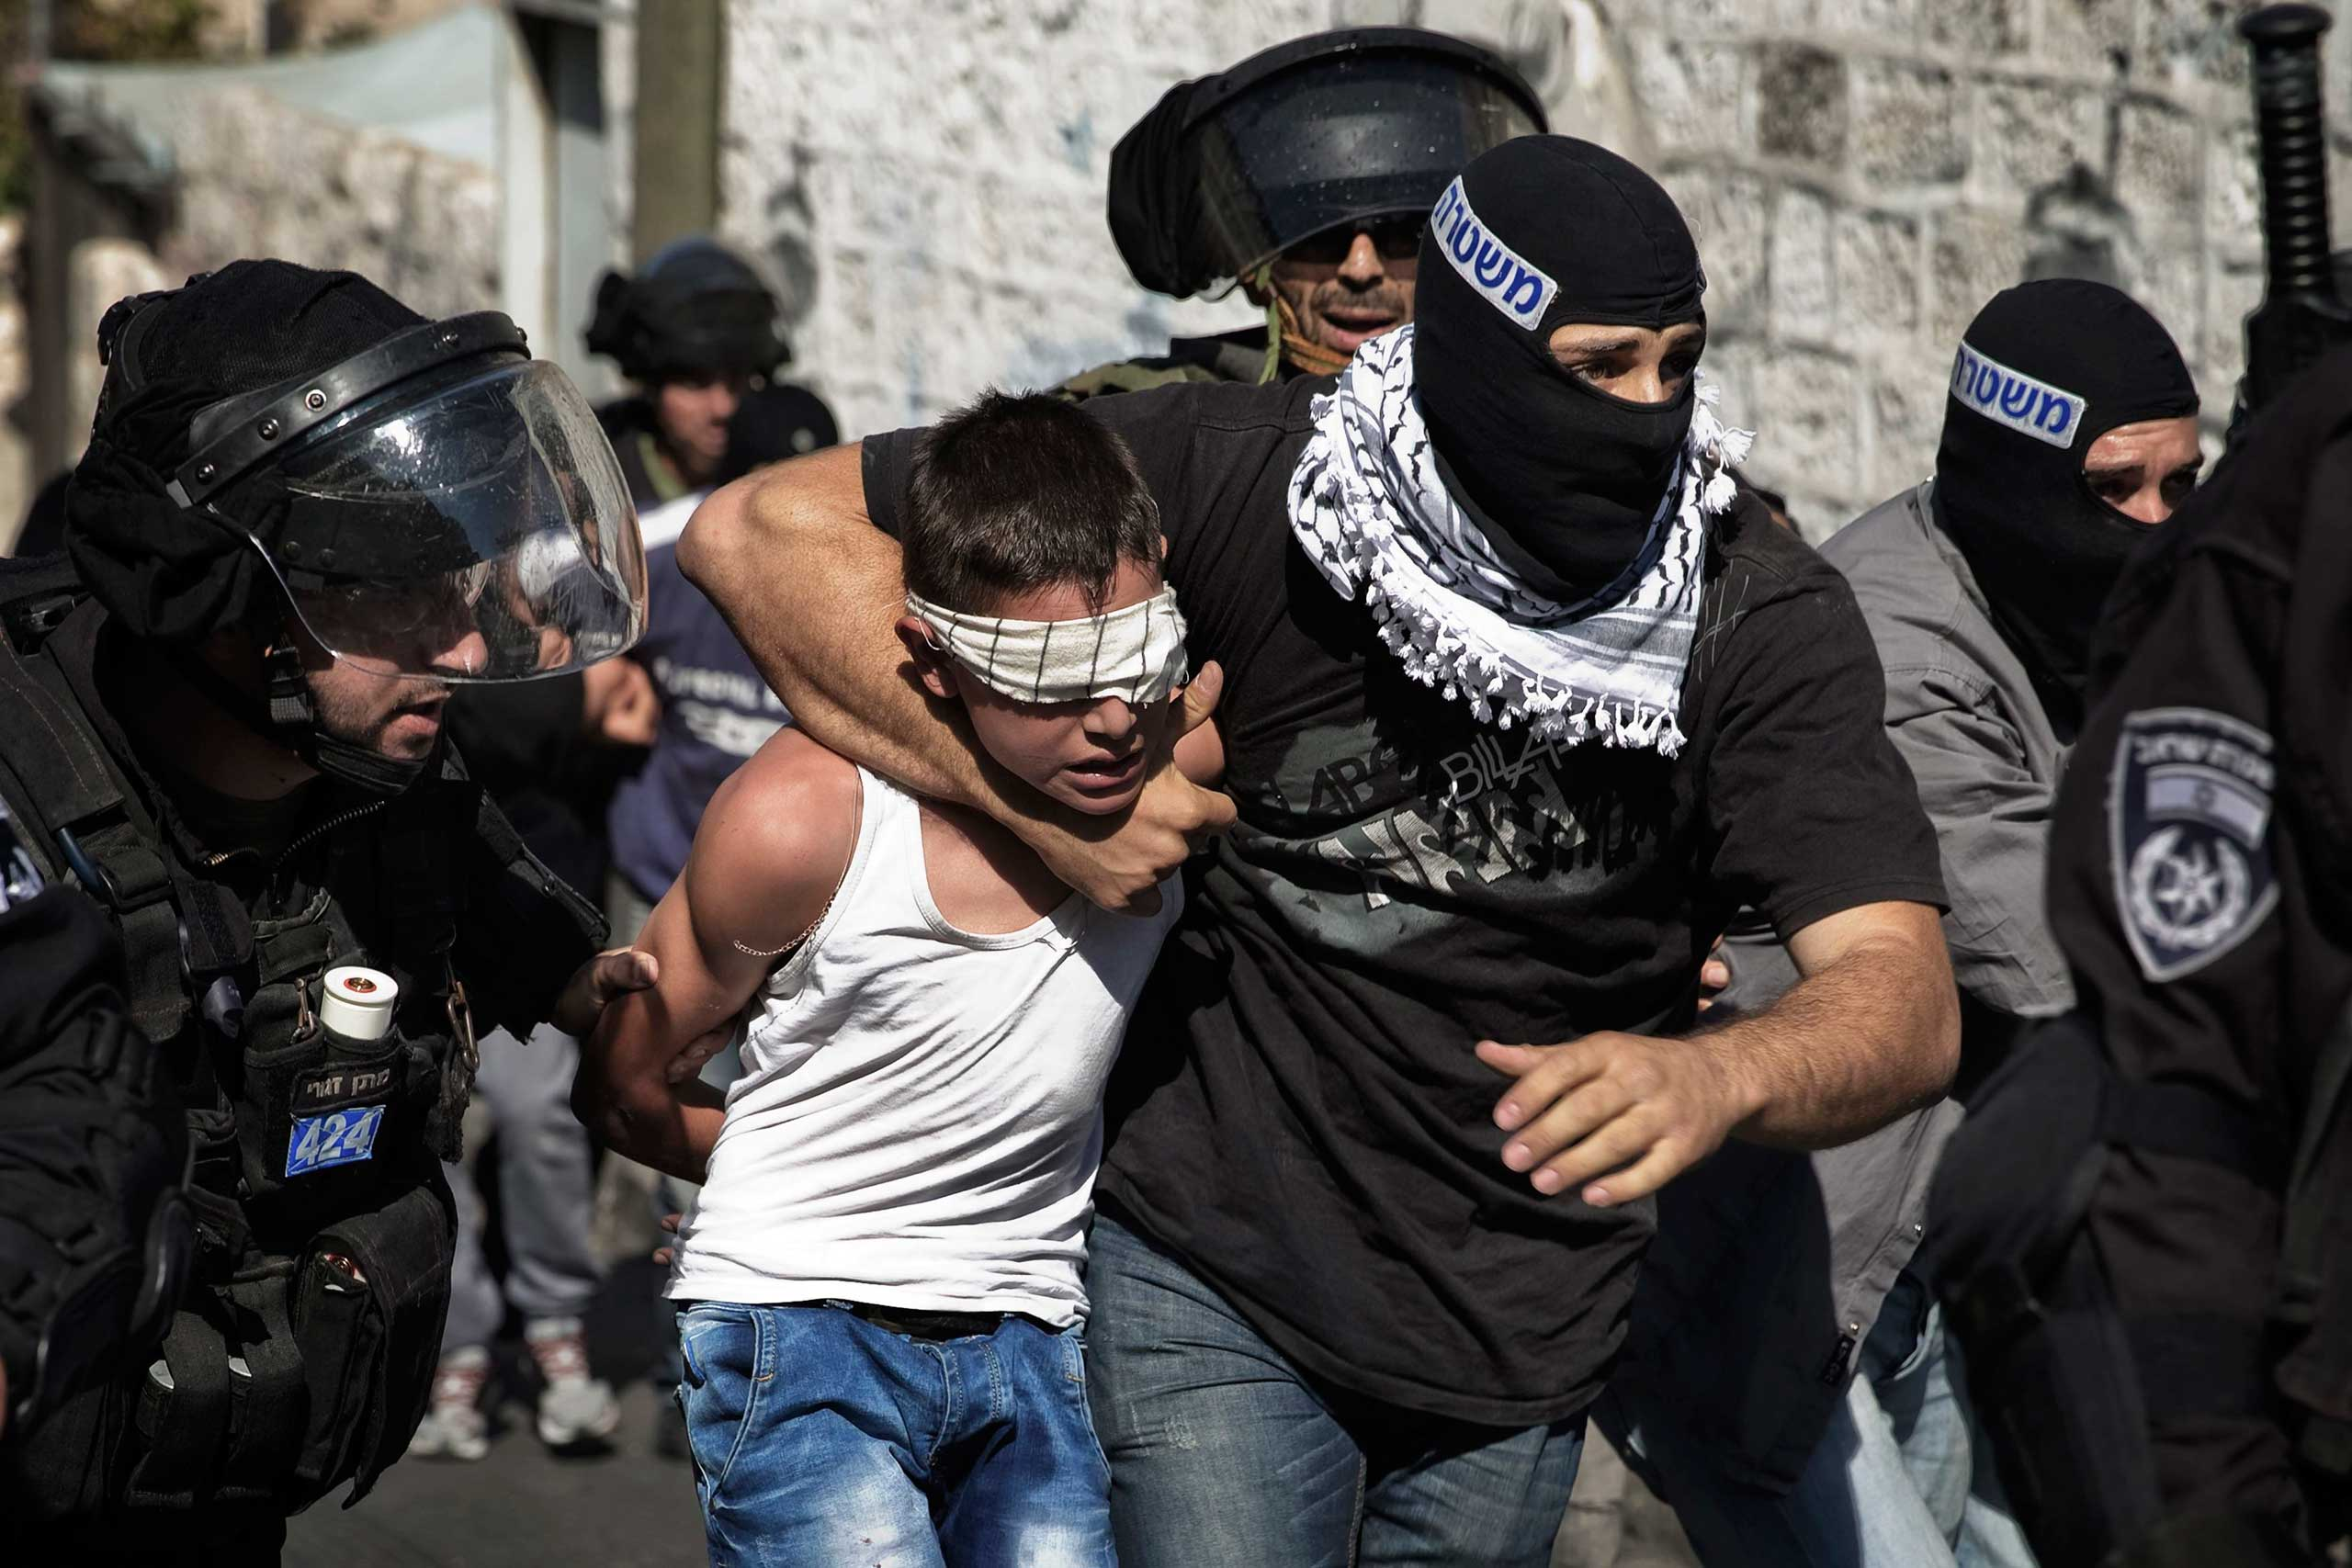 Oct. 24, 2014. Israeli police detain a Palestinian youth following clashes after Friday prayers in the east Jerusalem neighborhood of Wadi al-Joz. Tension in Jerusalem rose on Wednesday after an Israeli baby died and eight other people were hurt when a Palestinian man slammed his car into pedestrians at a Jerusalem light railway stop.